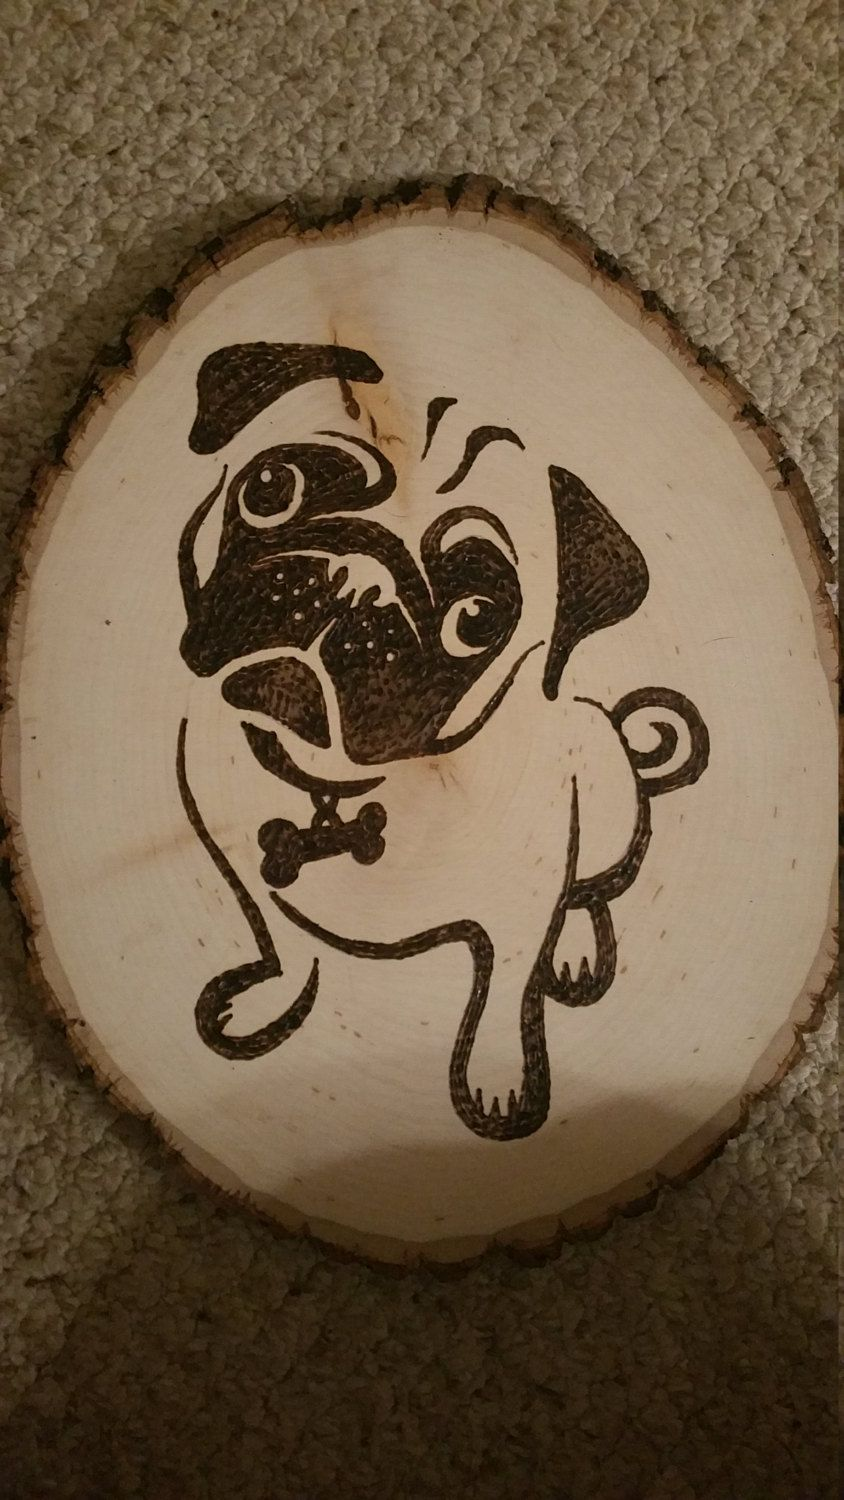 Pug Wood Burning Art Plaque Natural Wood By Thehypetype On Etsy